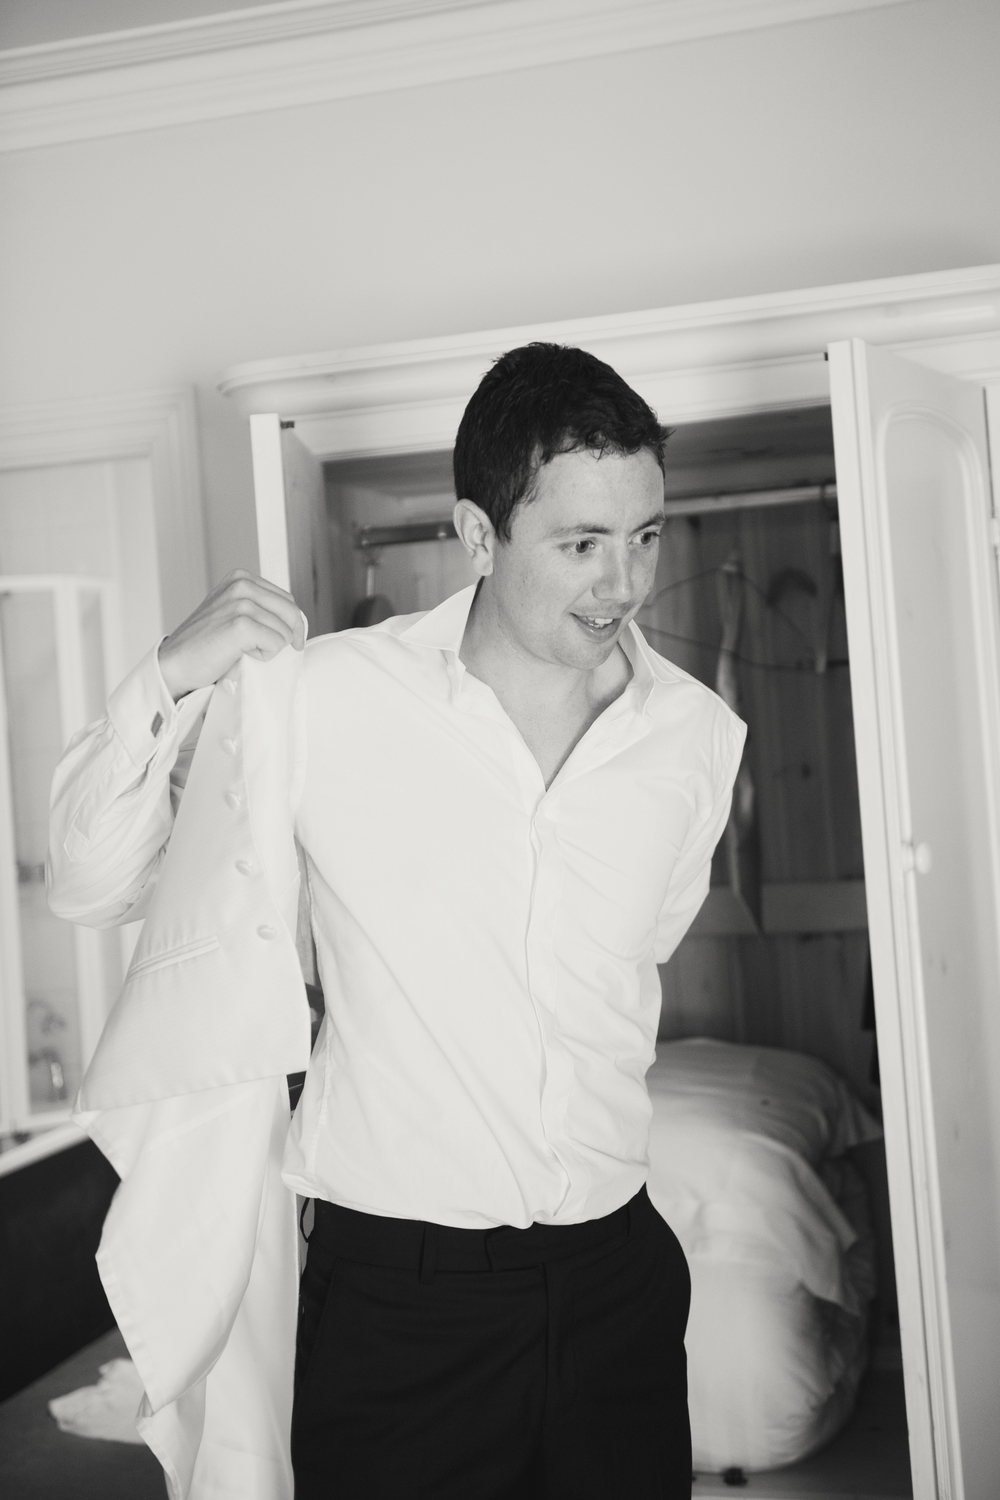 Suit by Tom Murphy's, Cork -   Photography: Weddings by KARA   © - Wedding Location: Kilshane House, Tipperary, Ireland